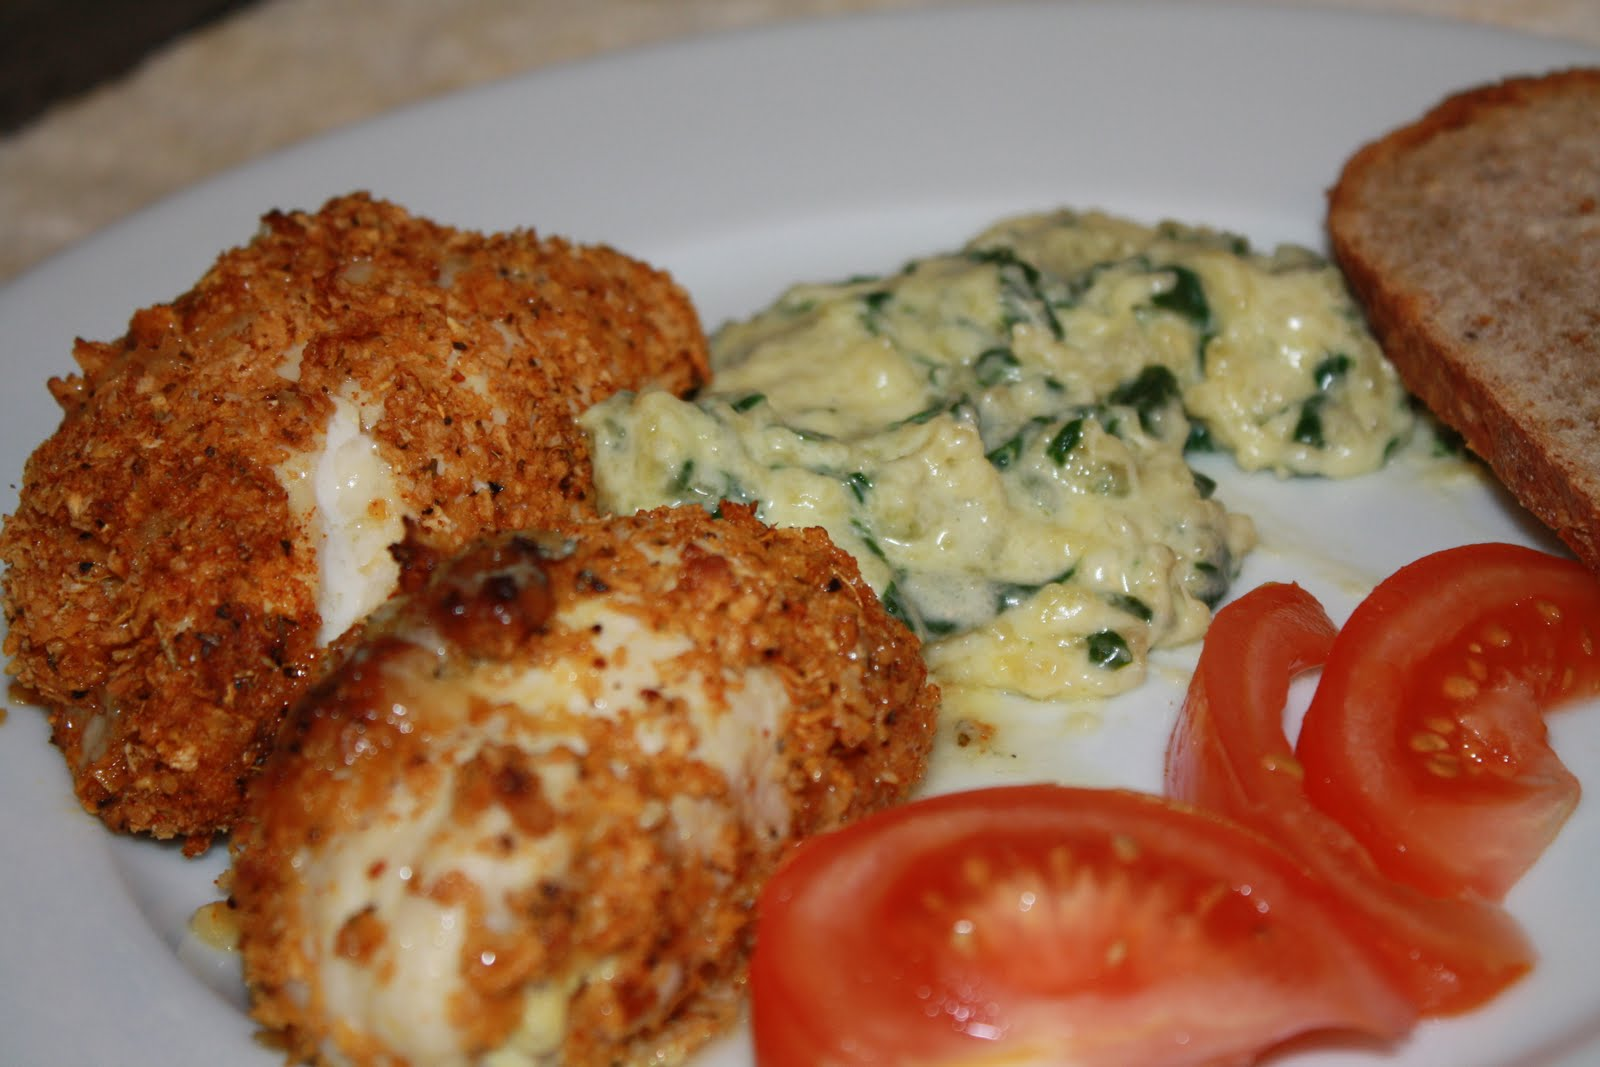 ... : Baked Blue Cheese Chicken Roulade with Creamed Spinach & Tomato